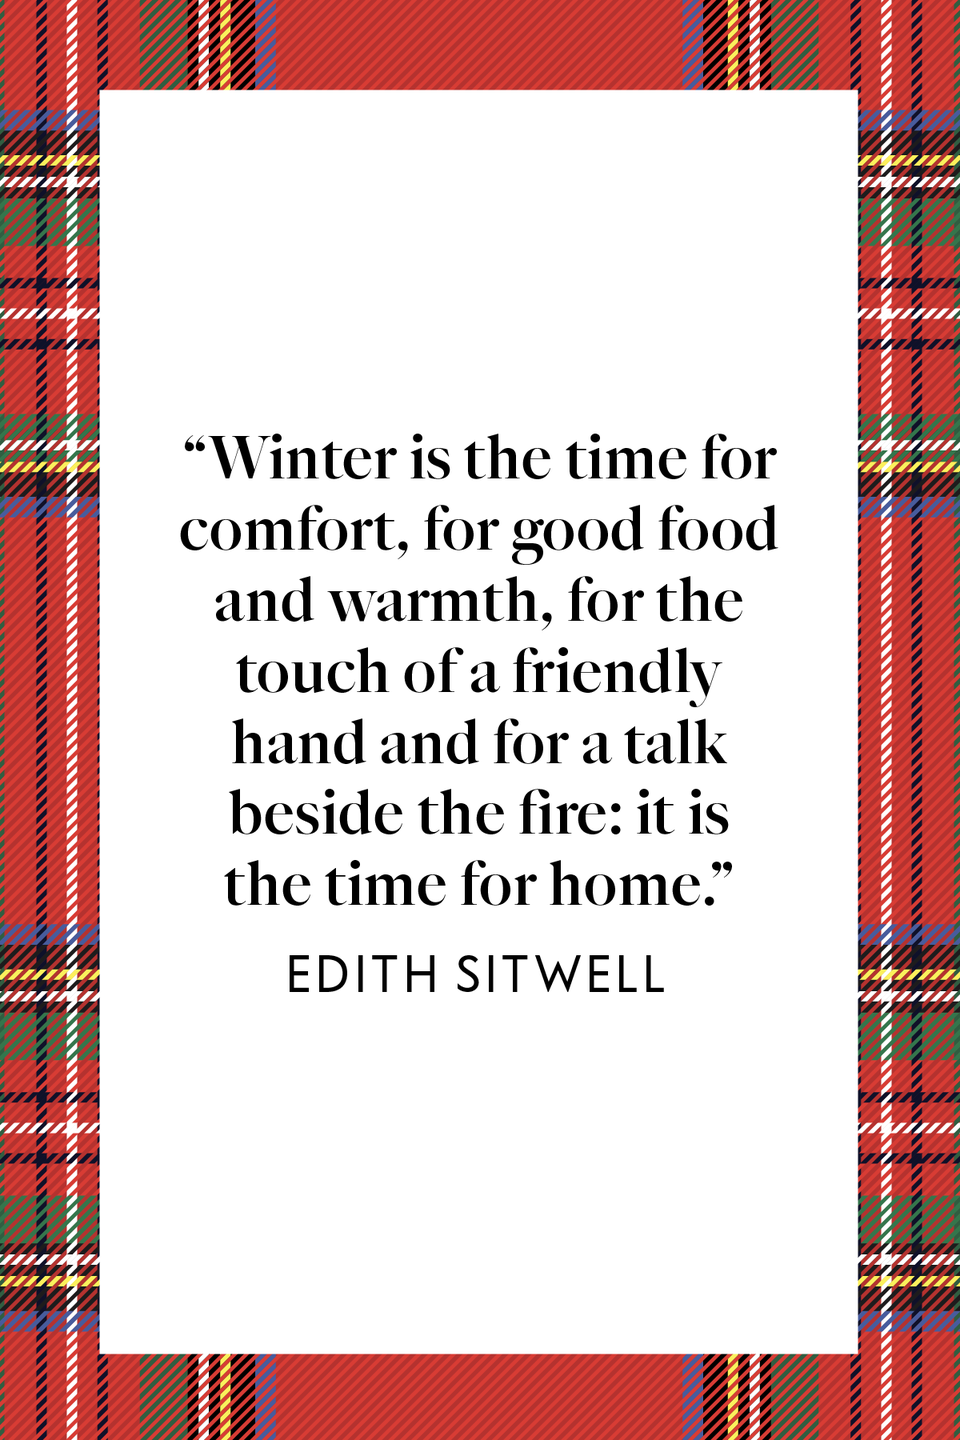 "<p>""Winter is the time for comfort, for good food and warmth, for the touch of a friendly hand and for a talk beside the fire: it is the time for home,"" British poet Edith Sitwell wrote in <em><a href=""https://www.amazon.com/Taken-Care-Autobiography-Edith-Sitwell/dp/B0007DLLYO?tag=syn-yahoo-20&ascsubtag=%5Bartid%7C10072.g.34536312%5Bsrc%7Cyahoo-us"" rel=""nofollow noopener"" target=""_blank"" data-ylk=""slk:Taken Care Of: The Autobiography Of Edith Sitwell"" class=""link rapid-noclick-resp"">Taken Care Of: The Autobiography Of Edith Sitwell</a>.</em></p>"